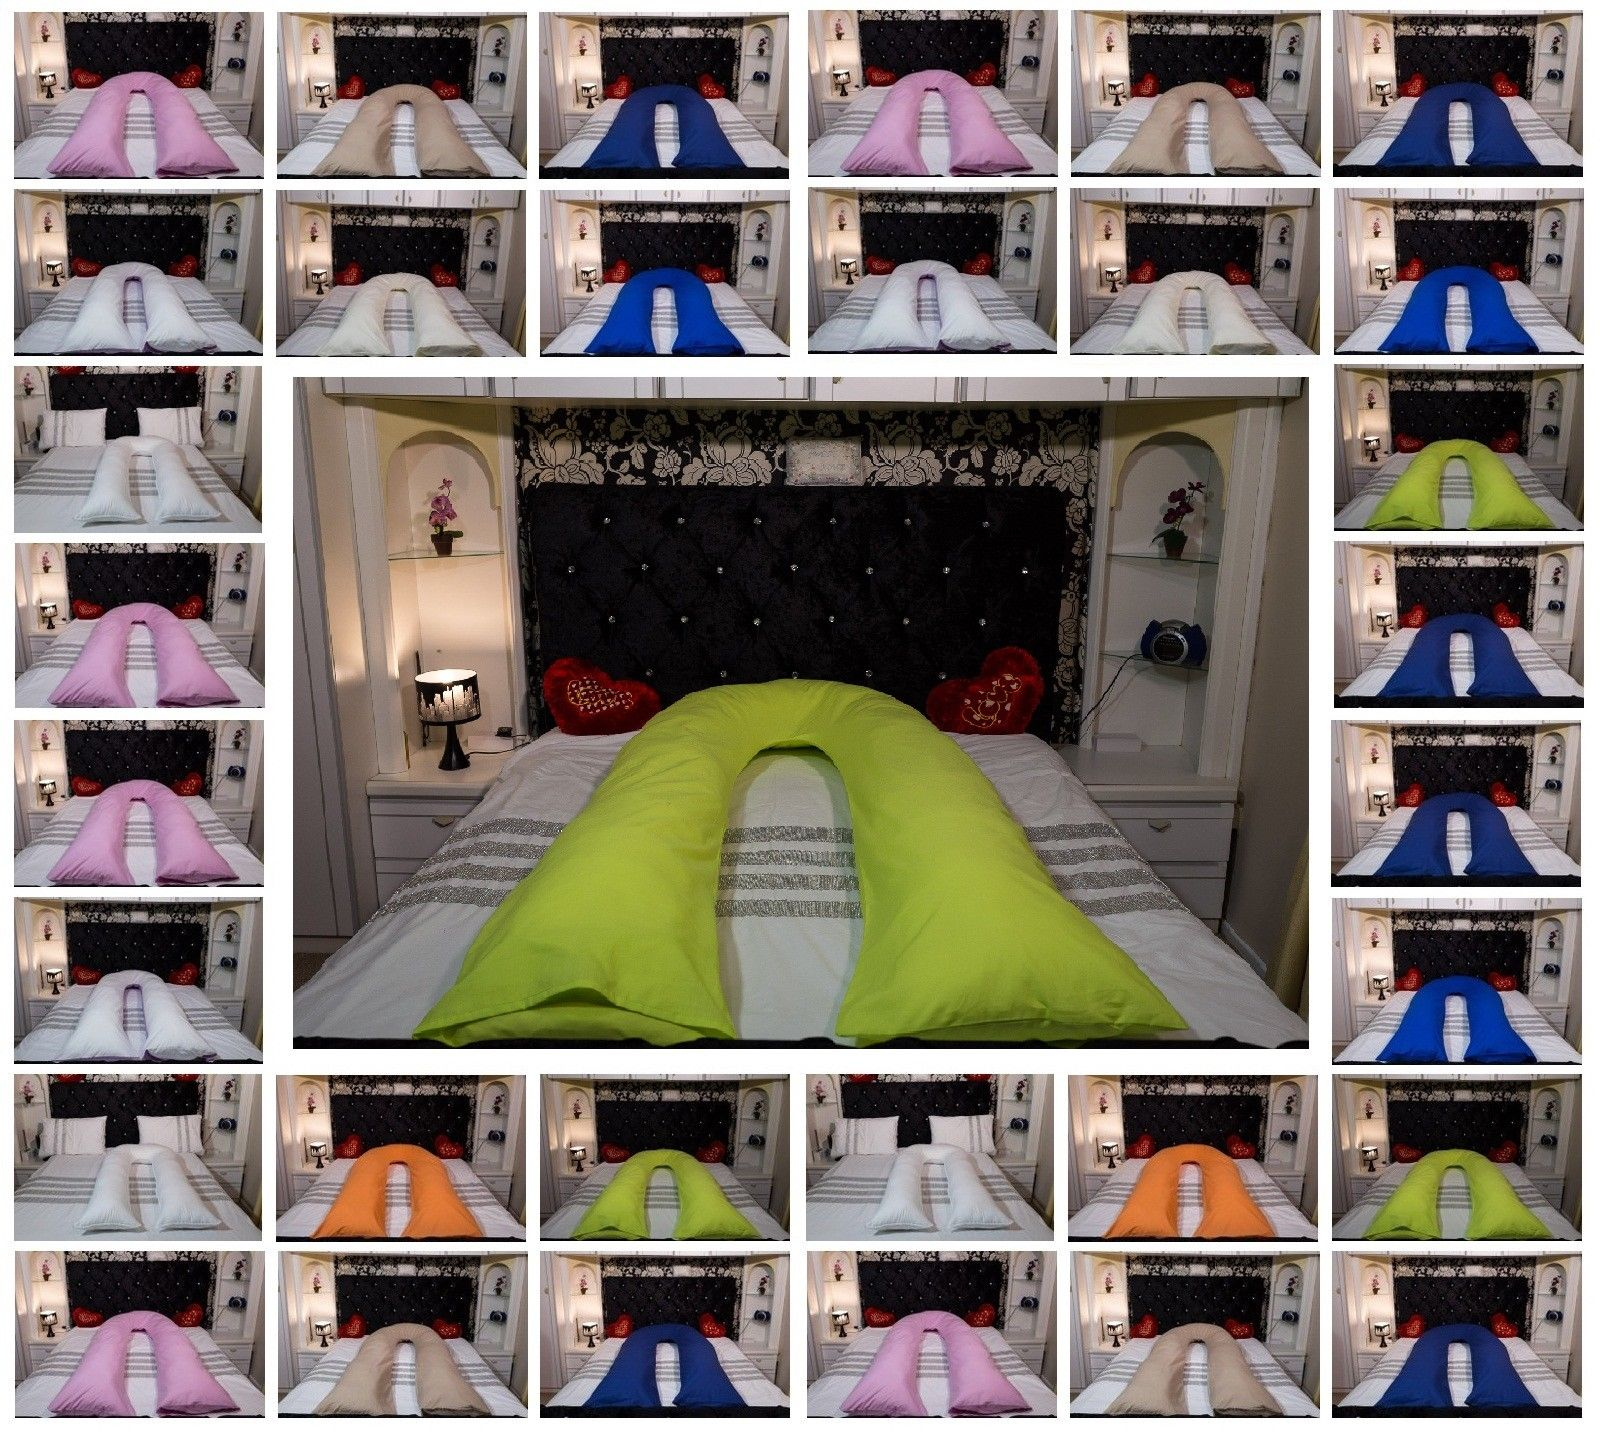 U Shaped Pillow Cover 9FT 12FT